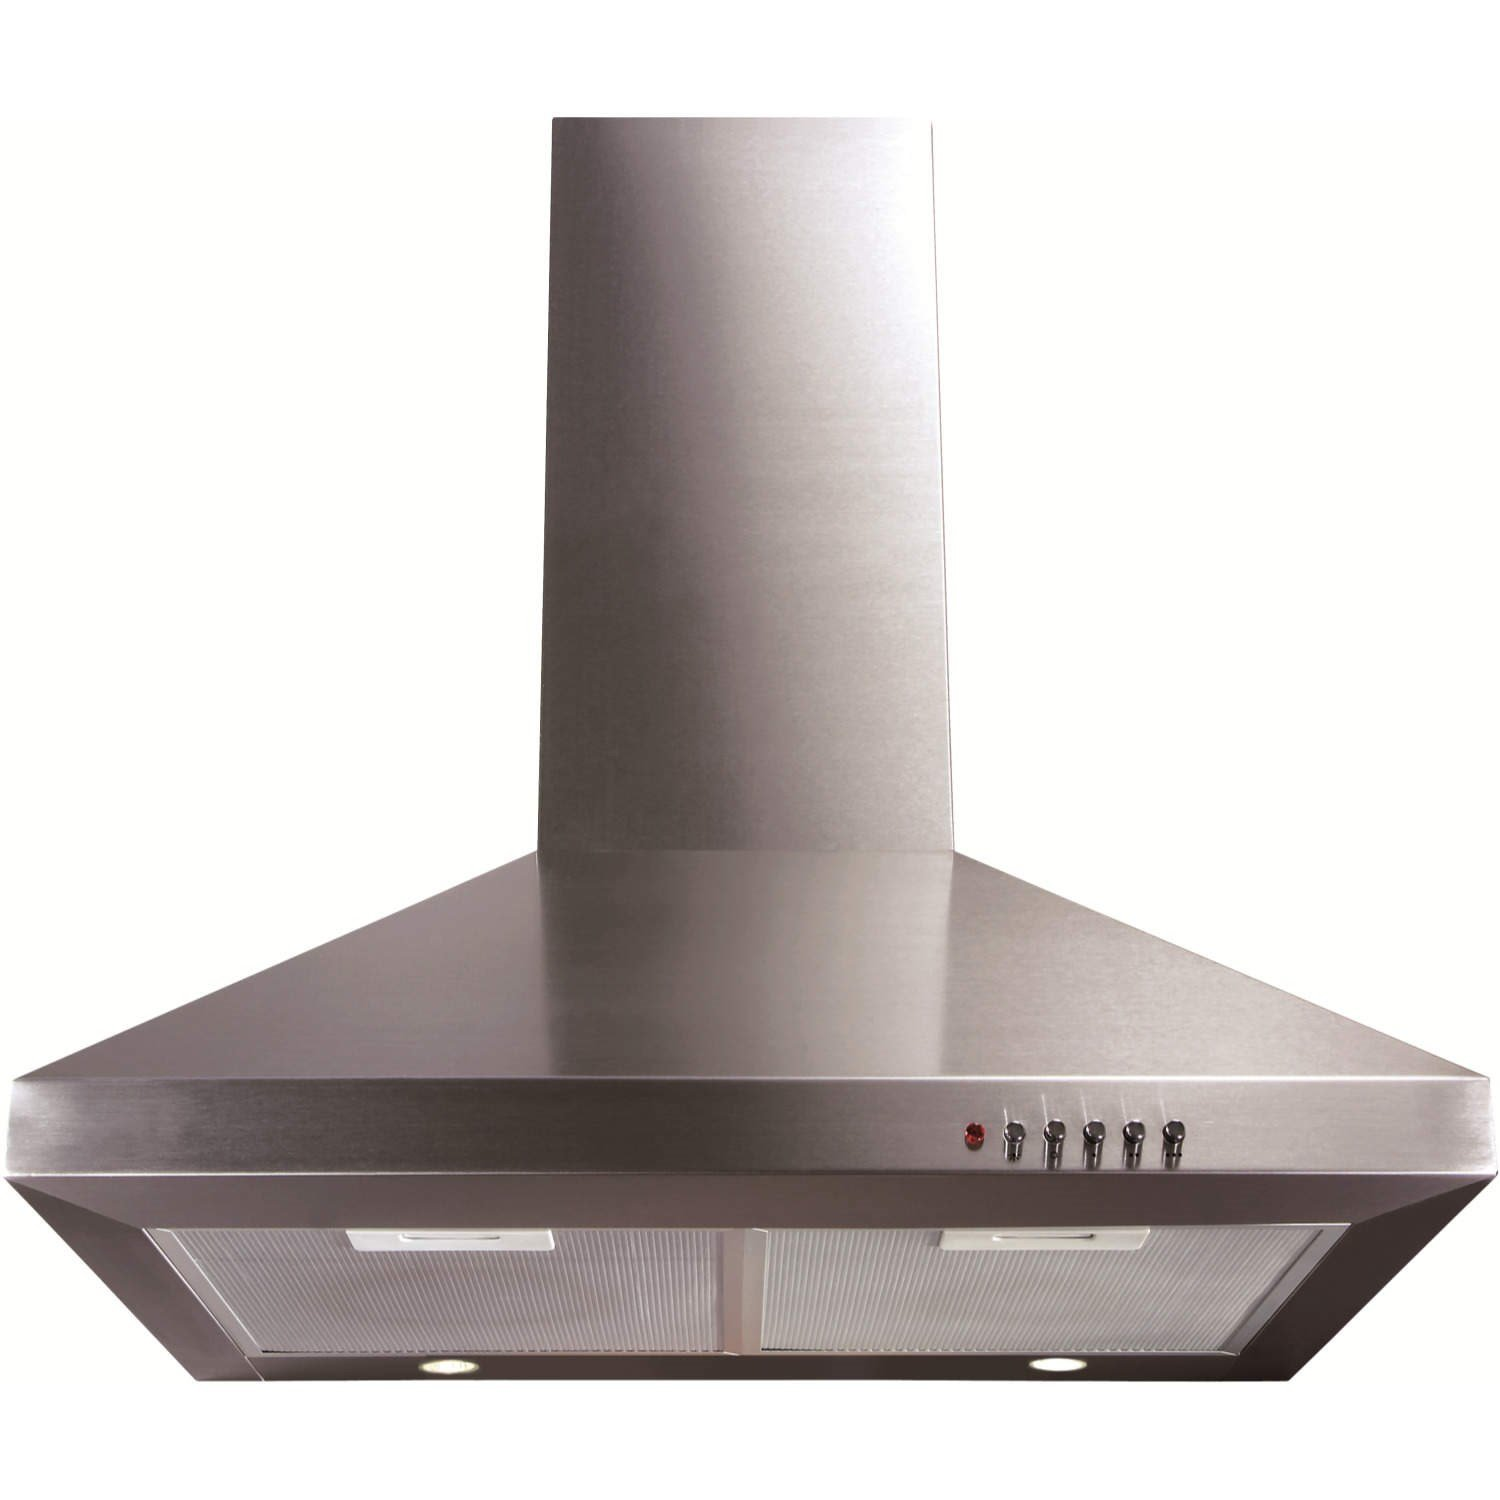 CDA ECH61SS Level 1 60cm Wide Chimney Cooker Hood Stainless Steel ECH61 SS